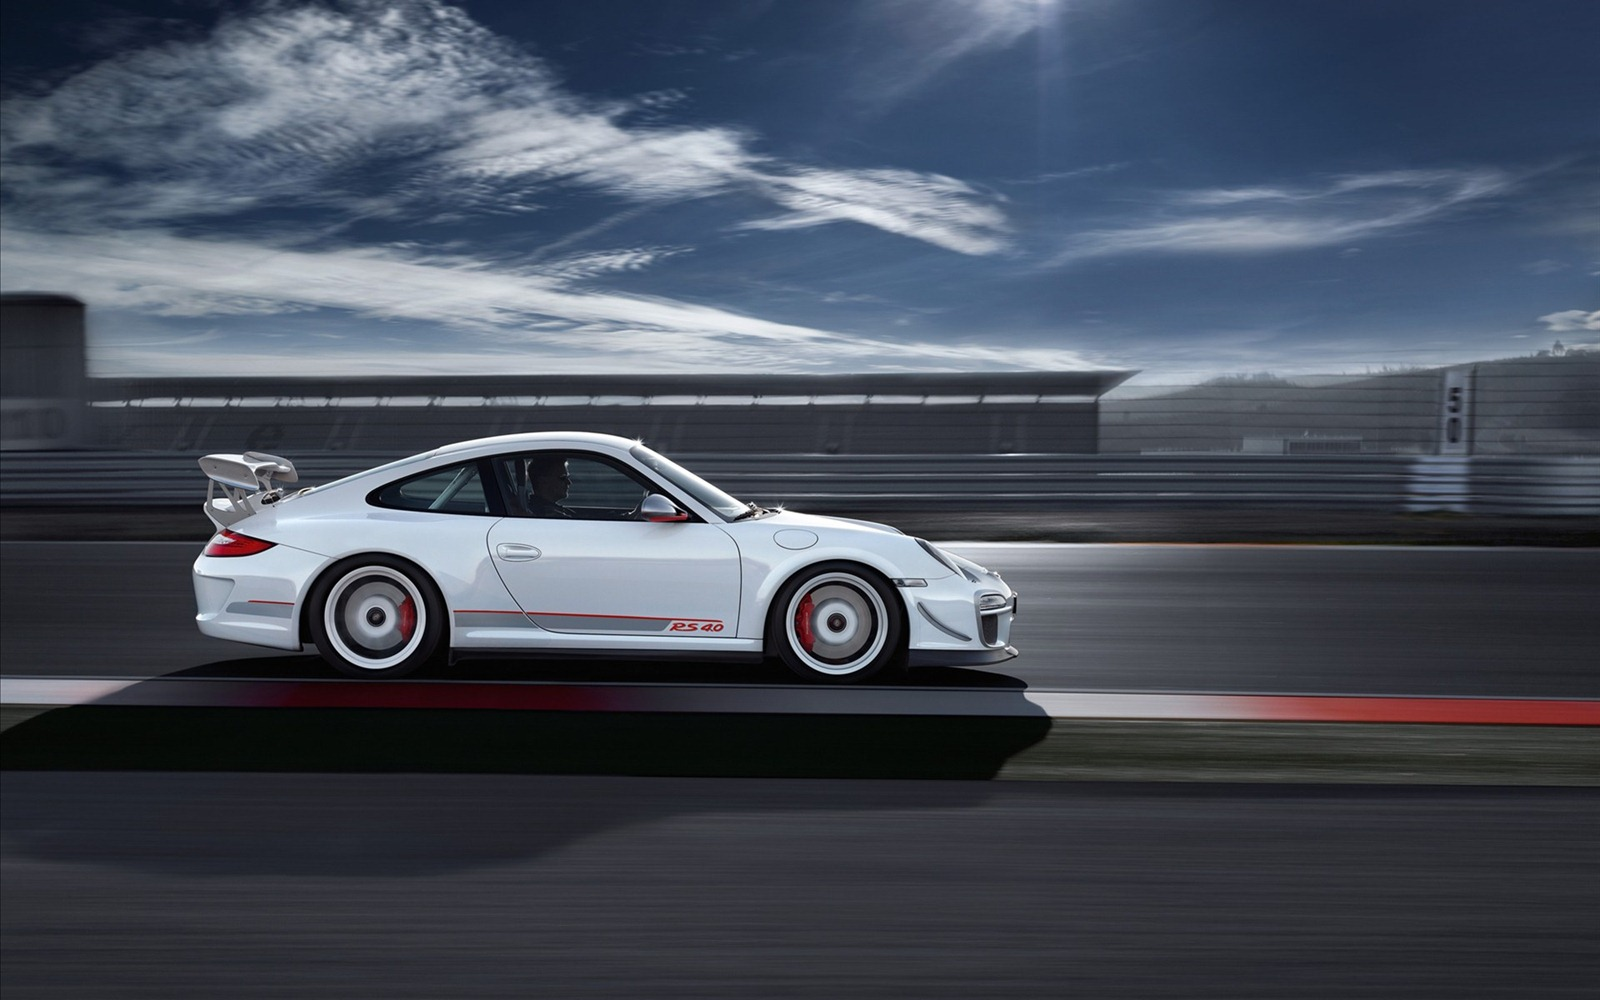 Porsche 911GT3 2012 Wallpaper 19201200 Wallpaper click for large 1600x1000